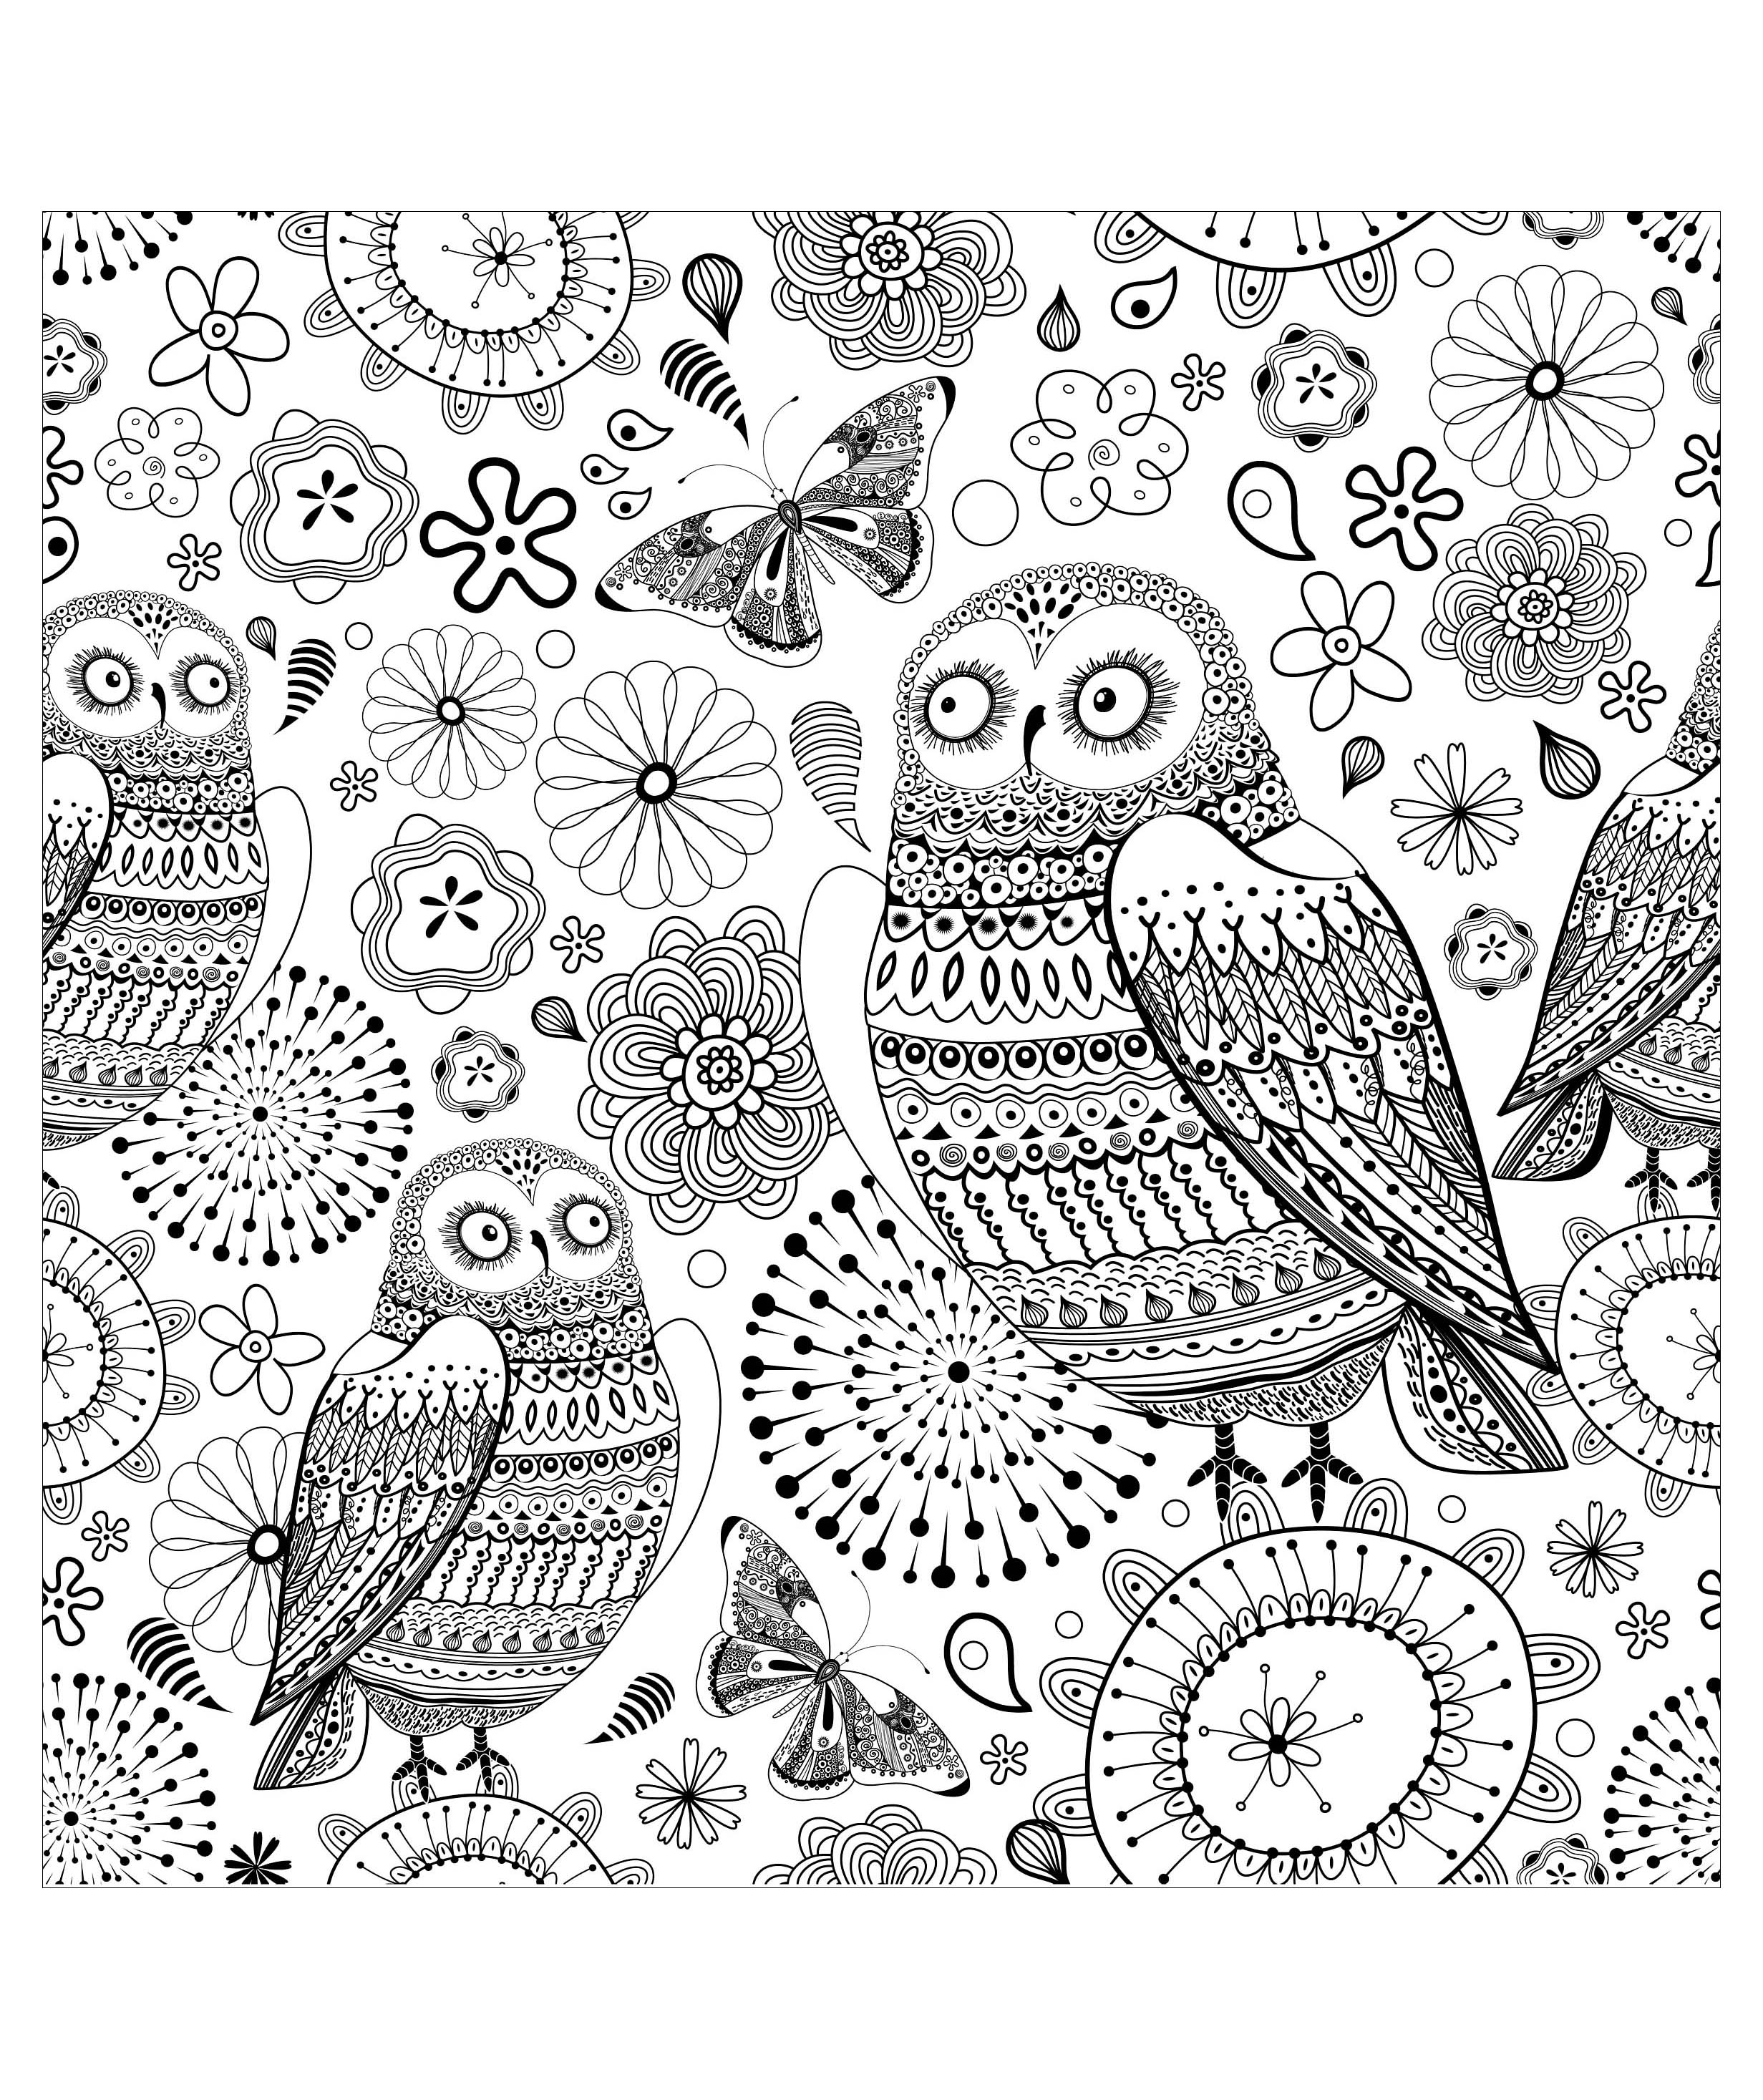 Owls - Owls Adult Coloring Pages